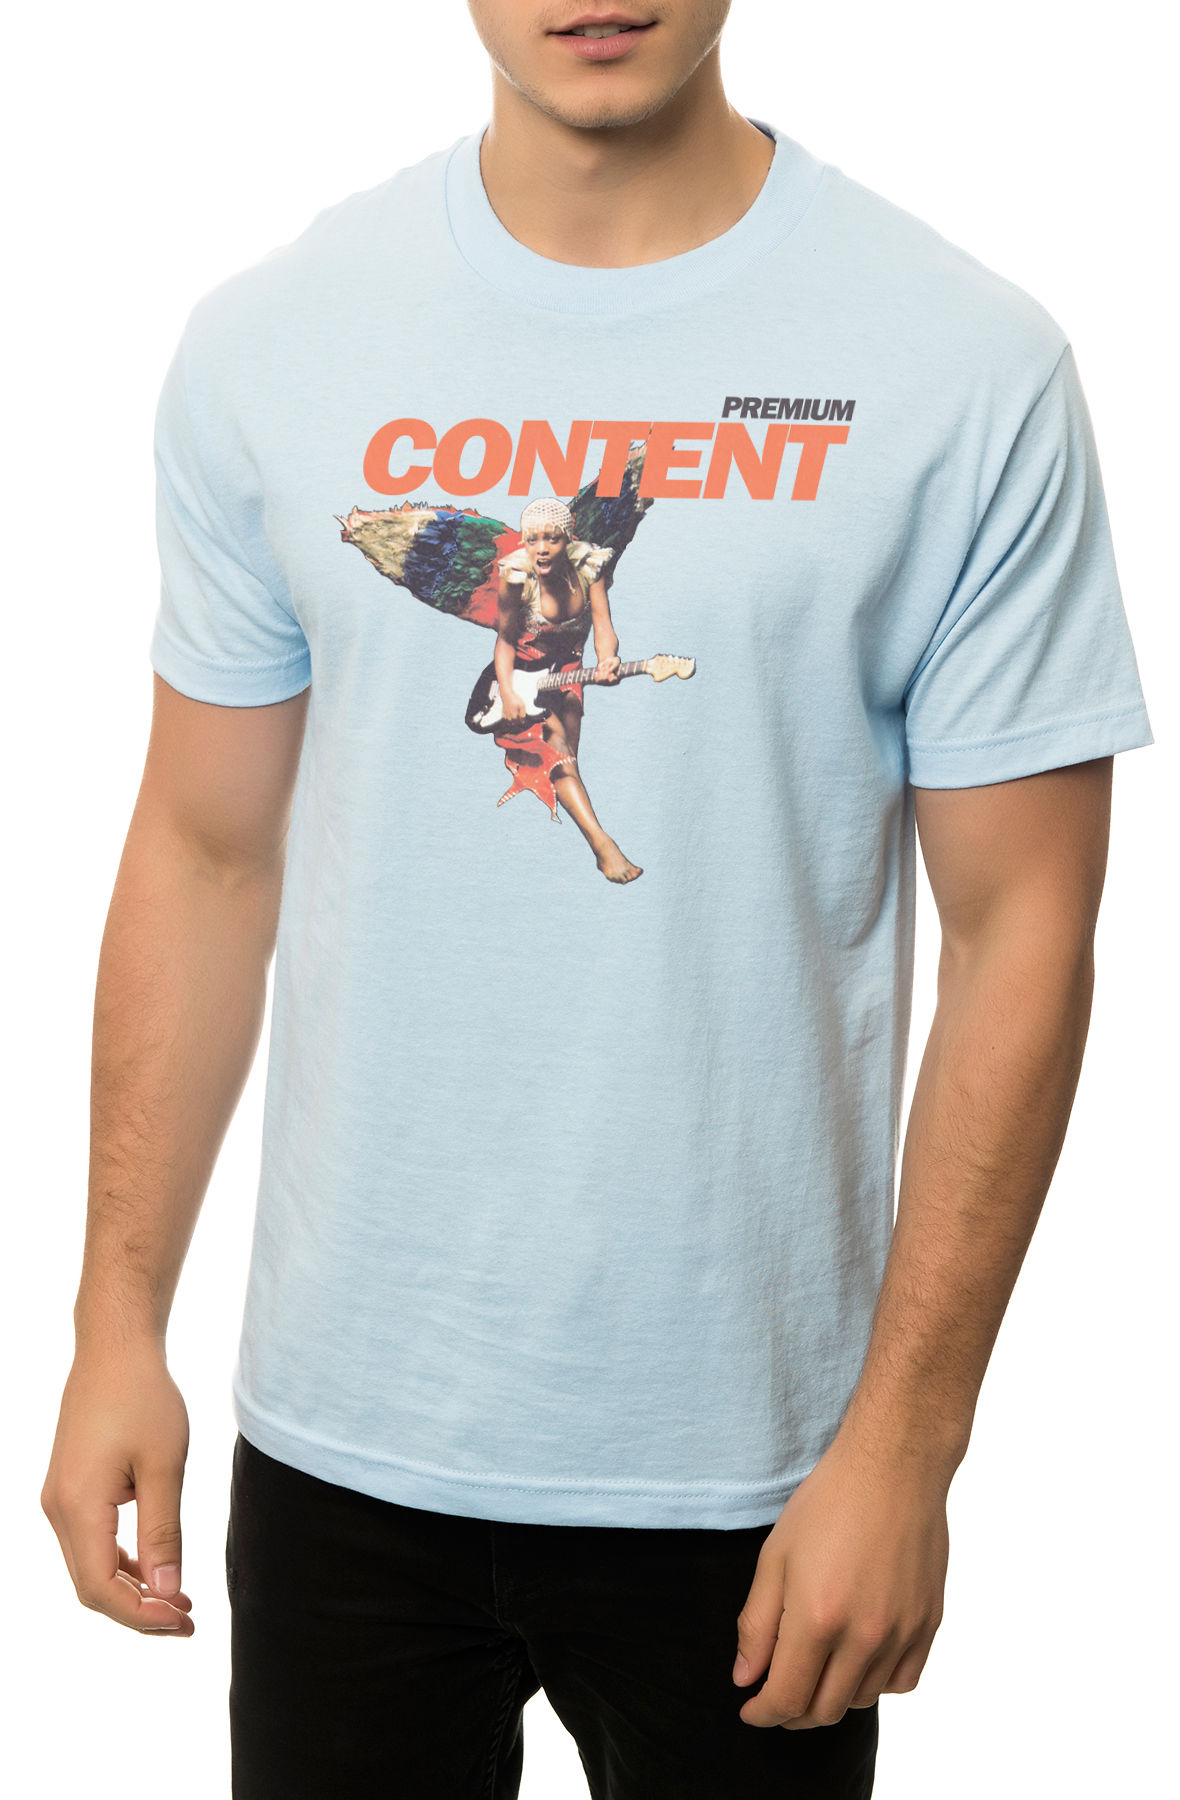 Image of The One Way Ticket Tee in Powder Blue